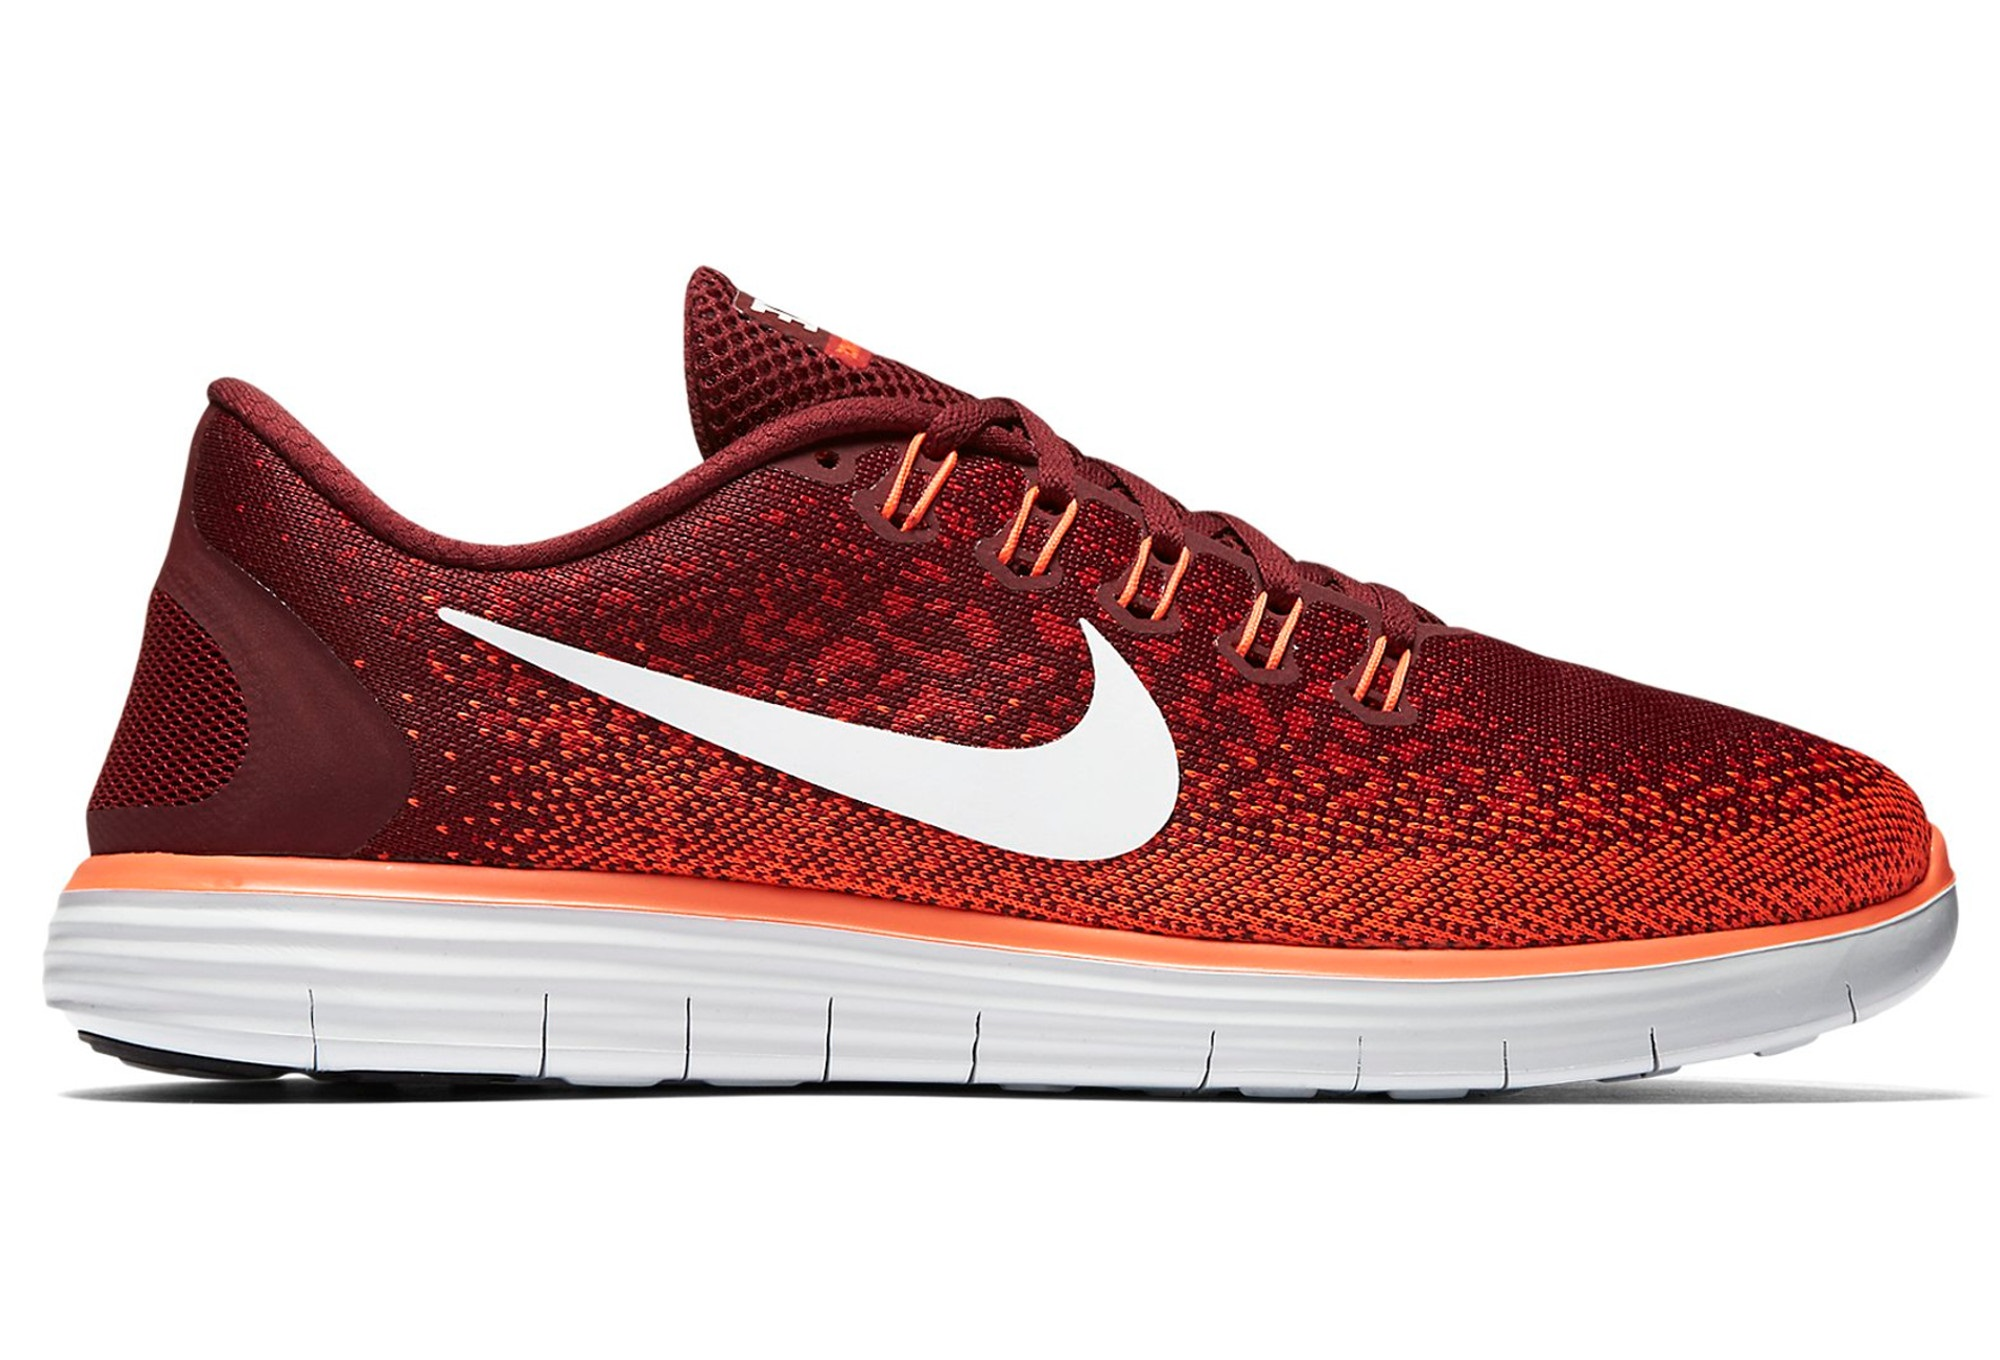 quality design 2430b a7f67 Chaussures de Running Nike FREE RUN DISTANCE Orange  Rouge